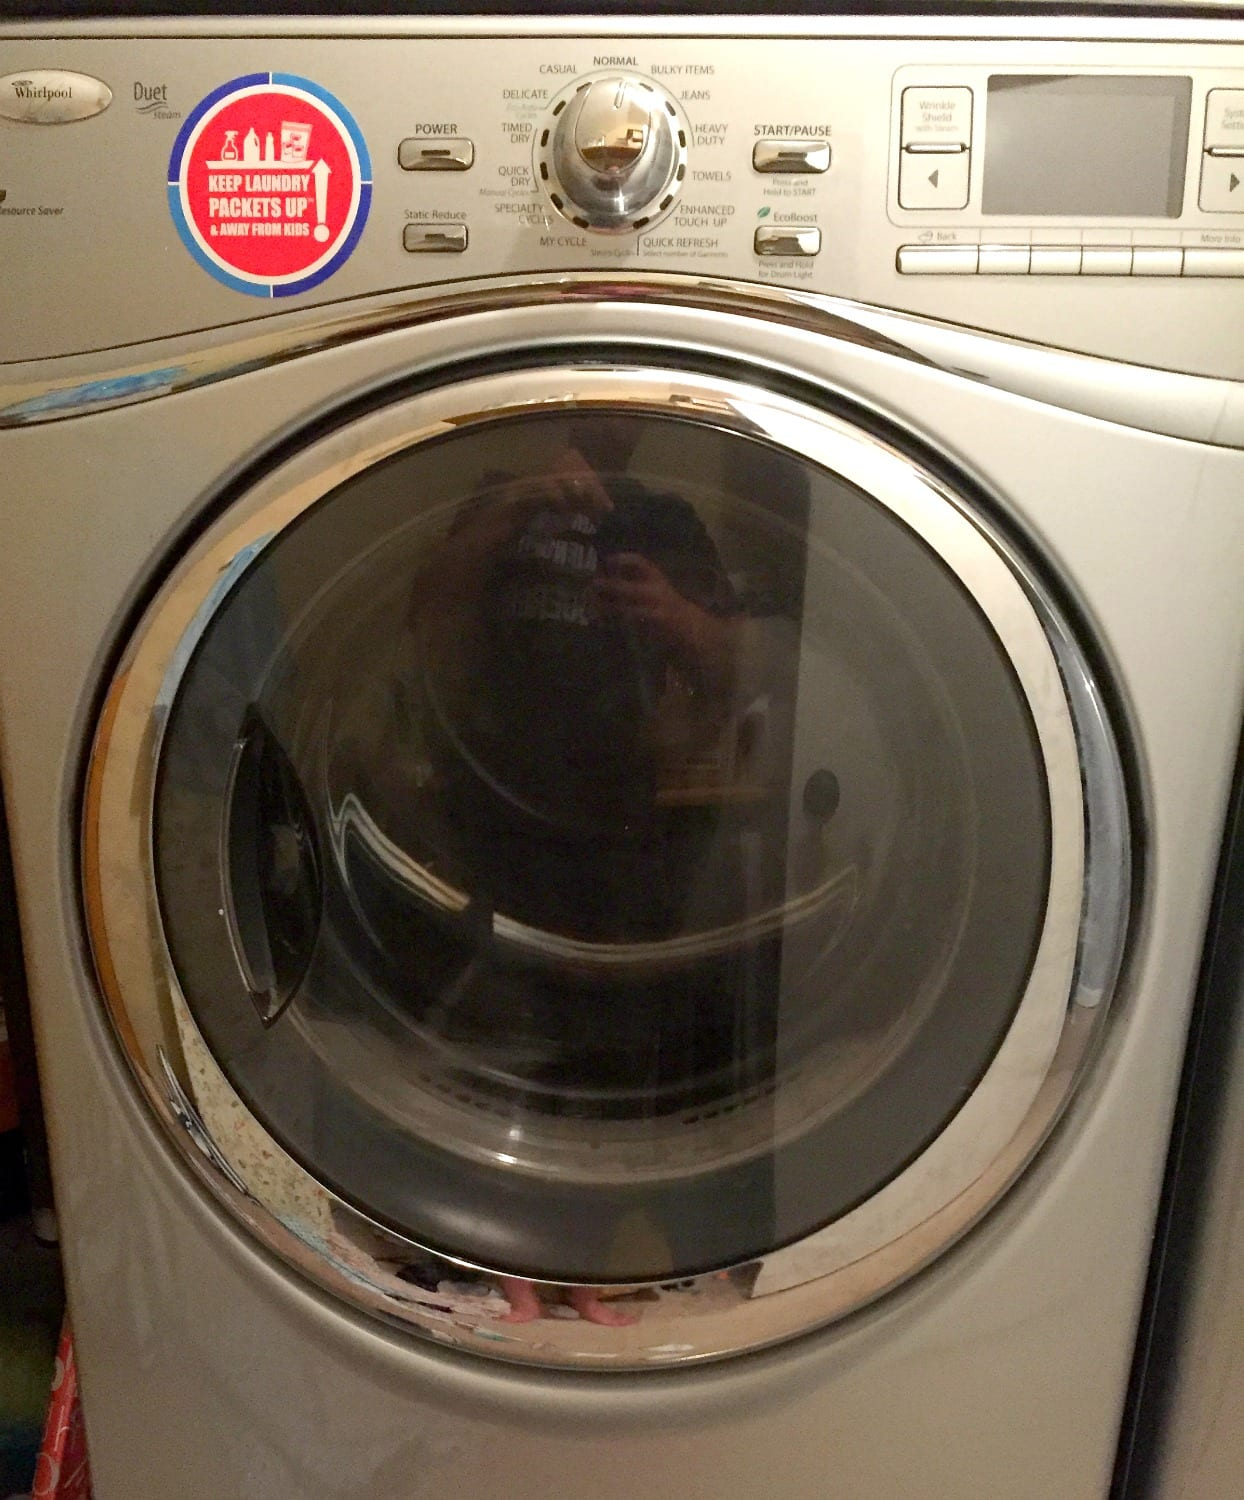 Packets Up The Importance Of Laundry Room Safety